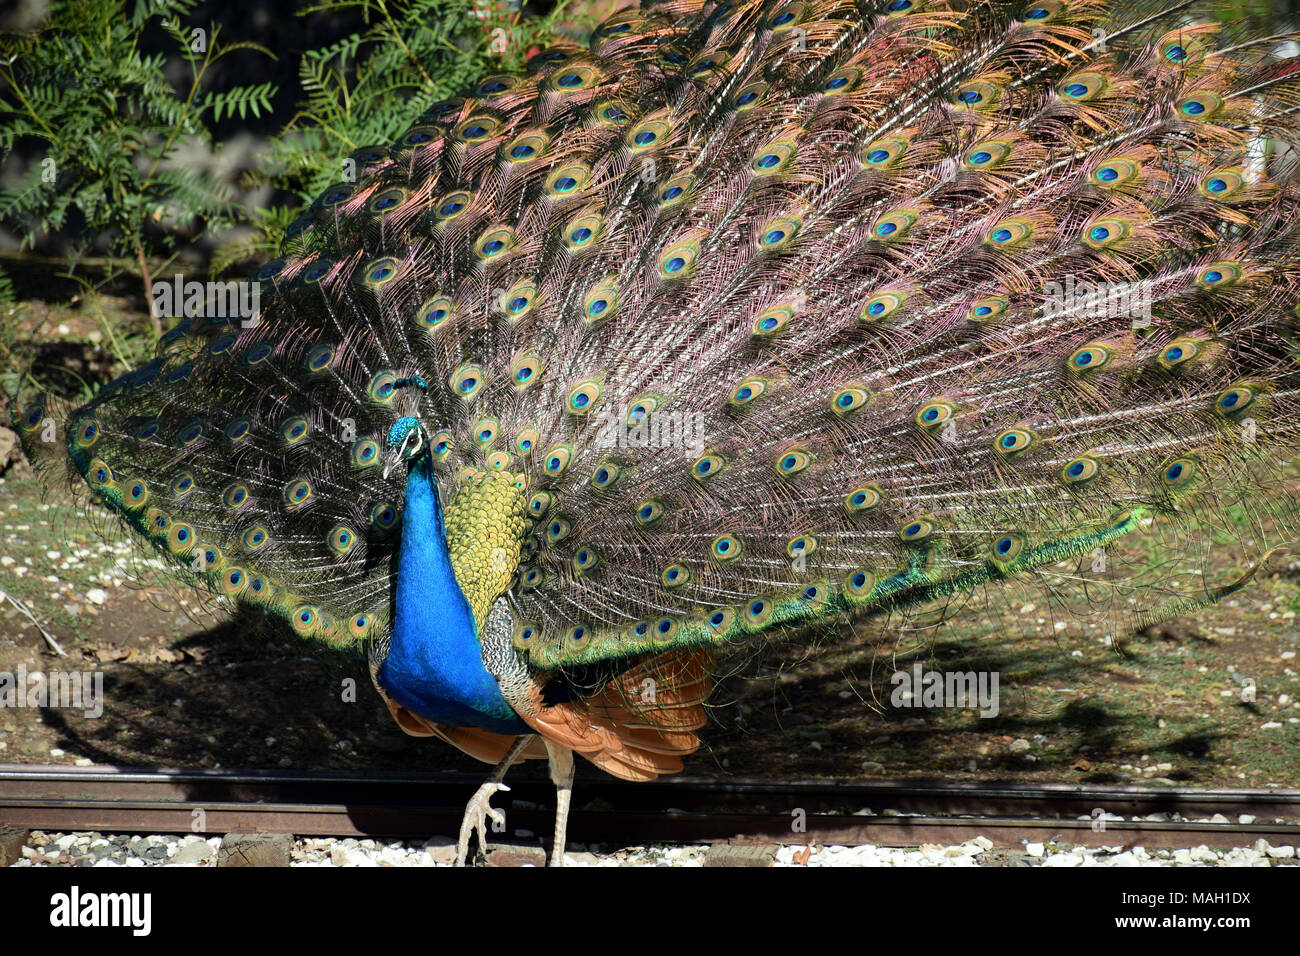 A male peacock showing his vibrant plumage Stock Photo